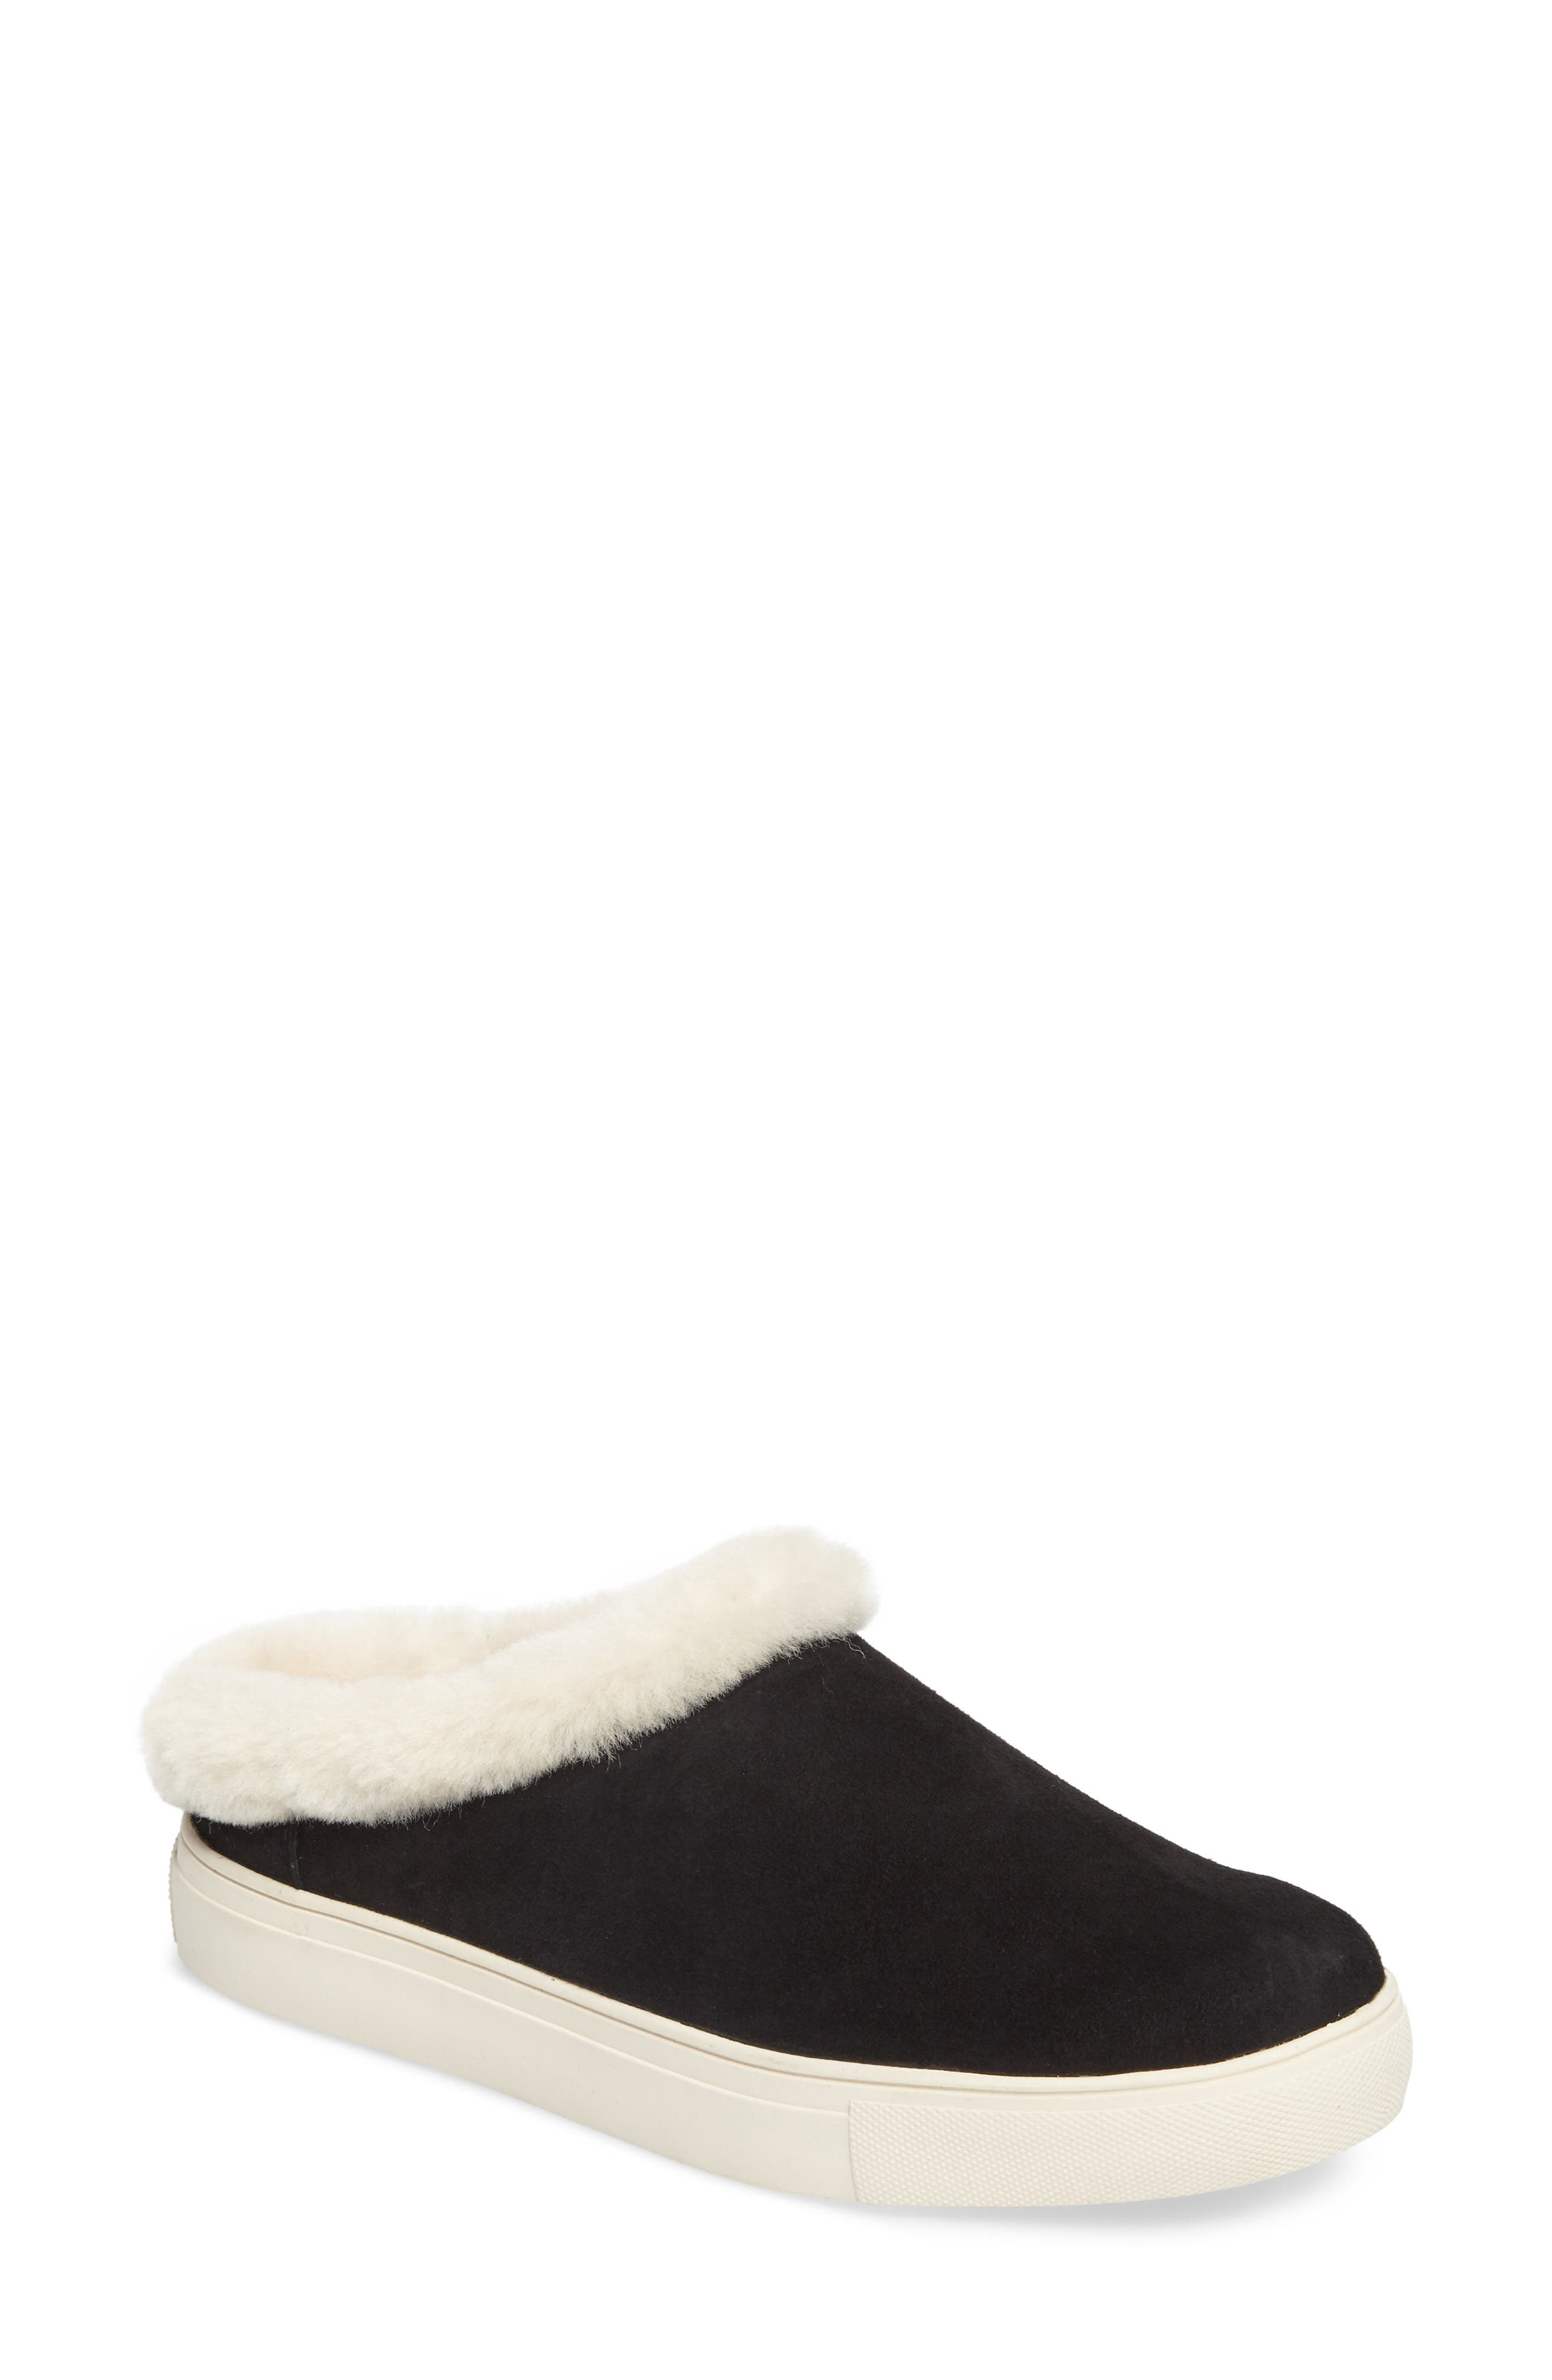 Sudini Leia Genuine Shearling Lined Slip-On (Women)